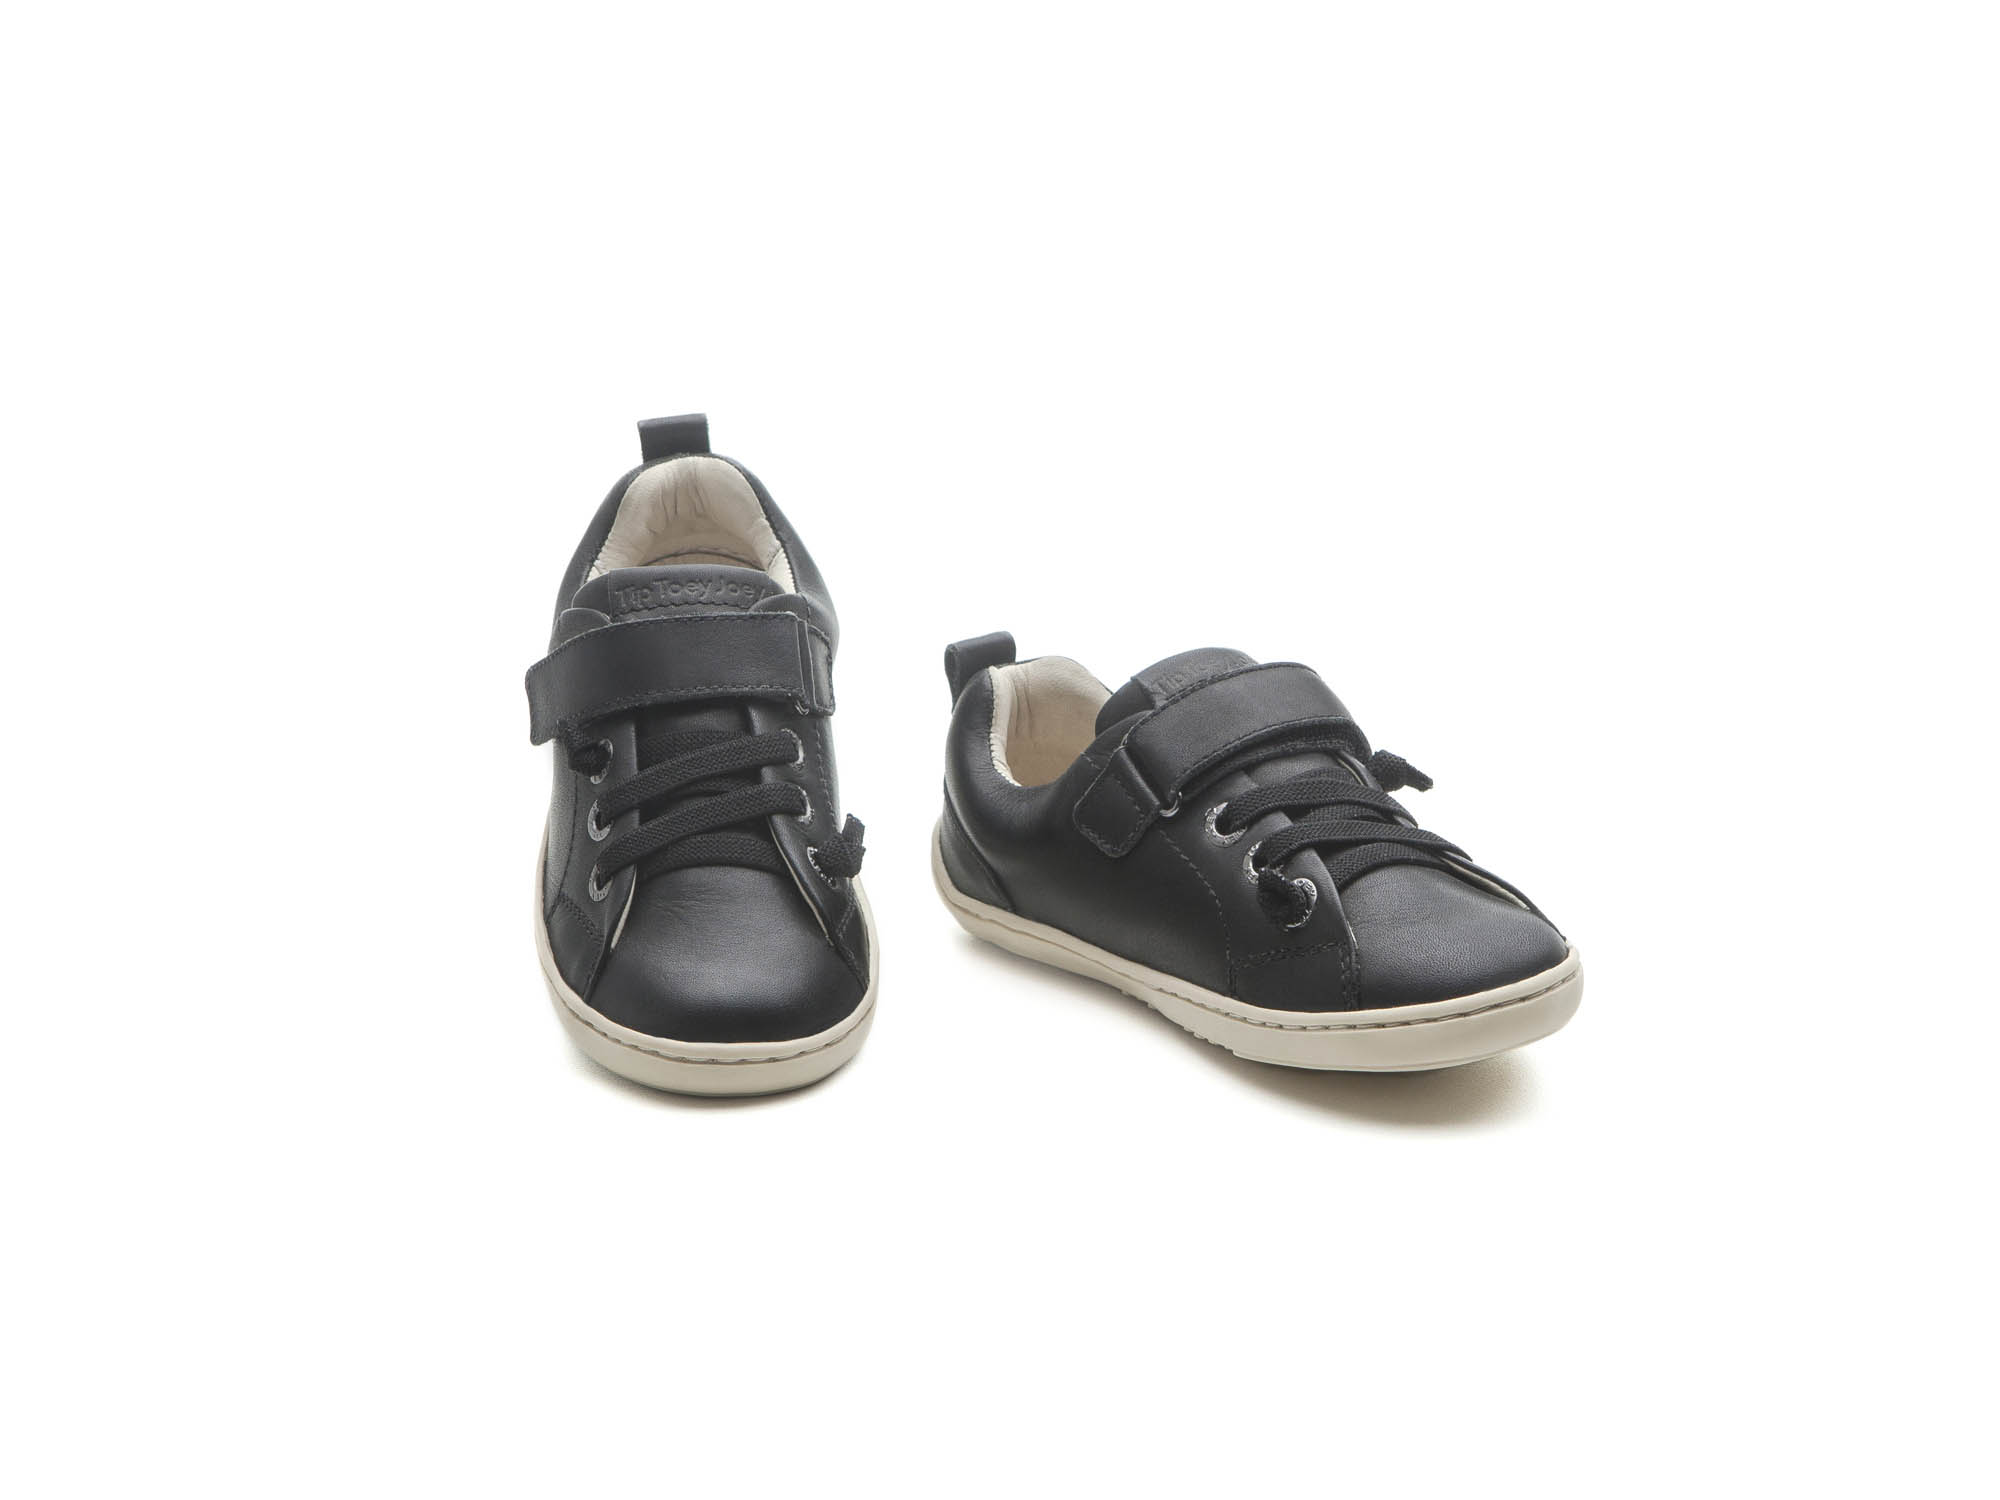 Tênis Little Grao Jet Black/ Jet Black Toddler for ages 2 to 4 years - 1